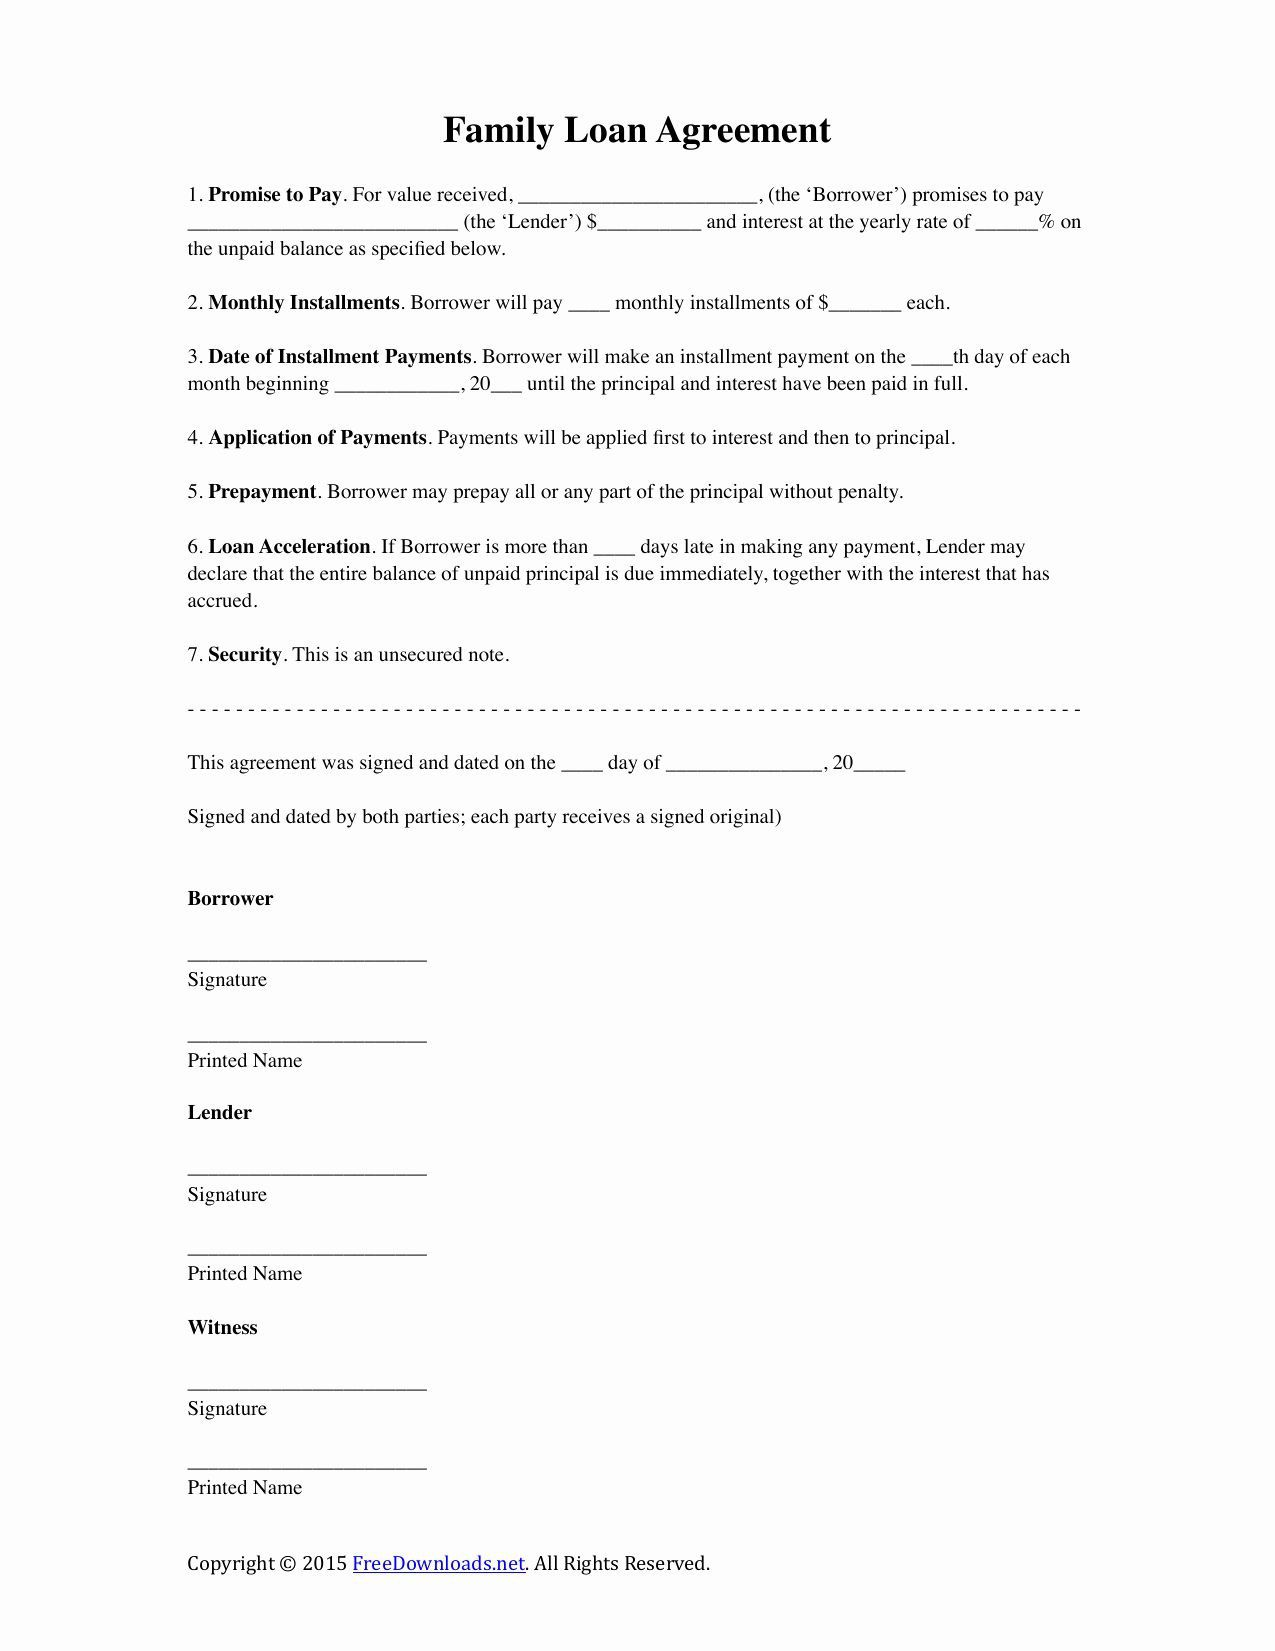 000 Wonderful Family Loan Agreement Format India Idea Full